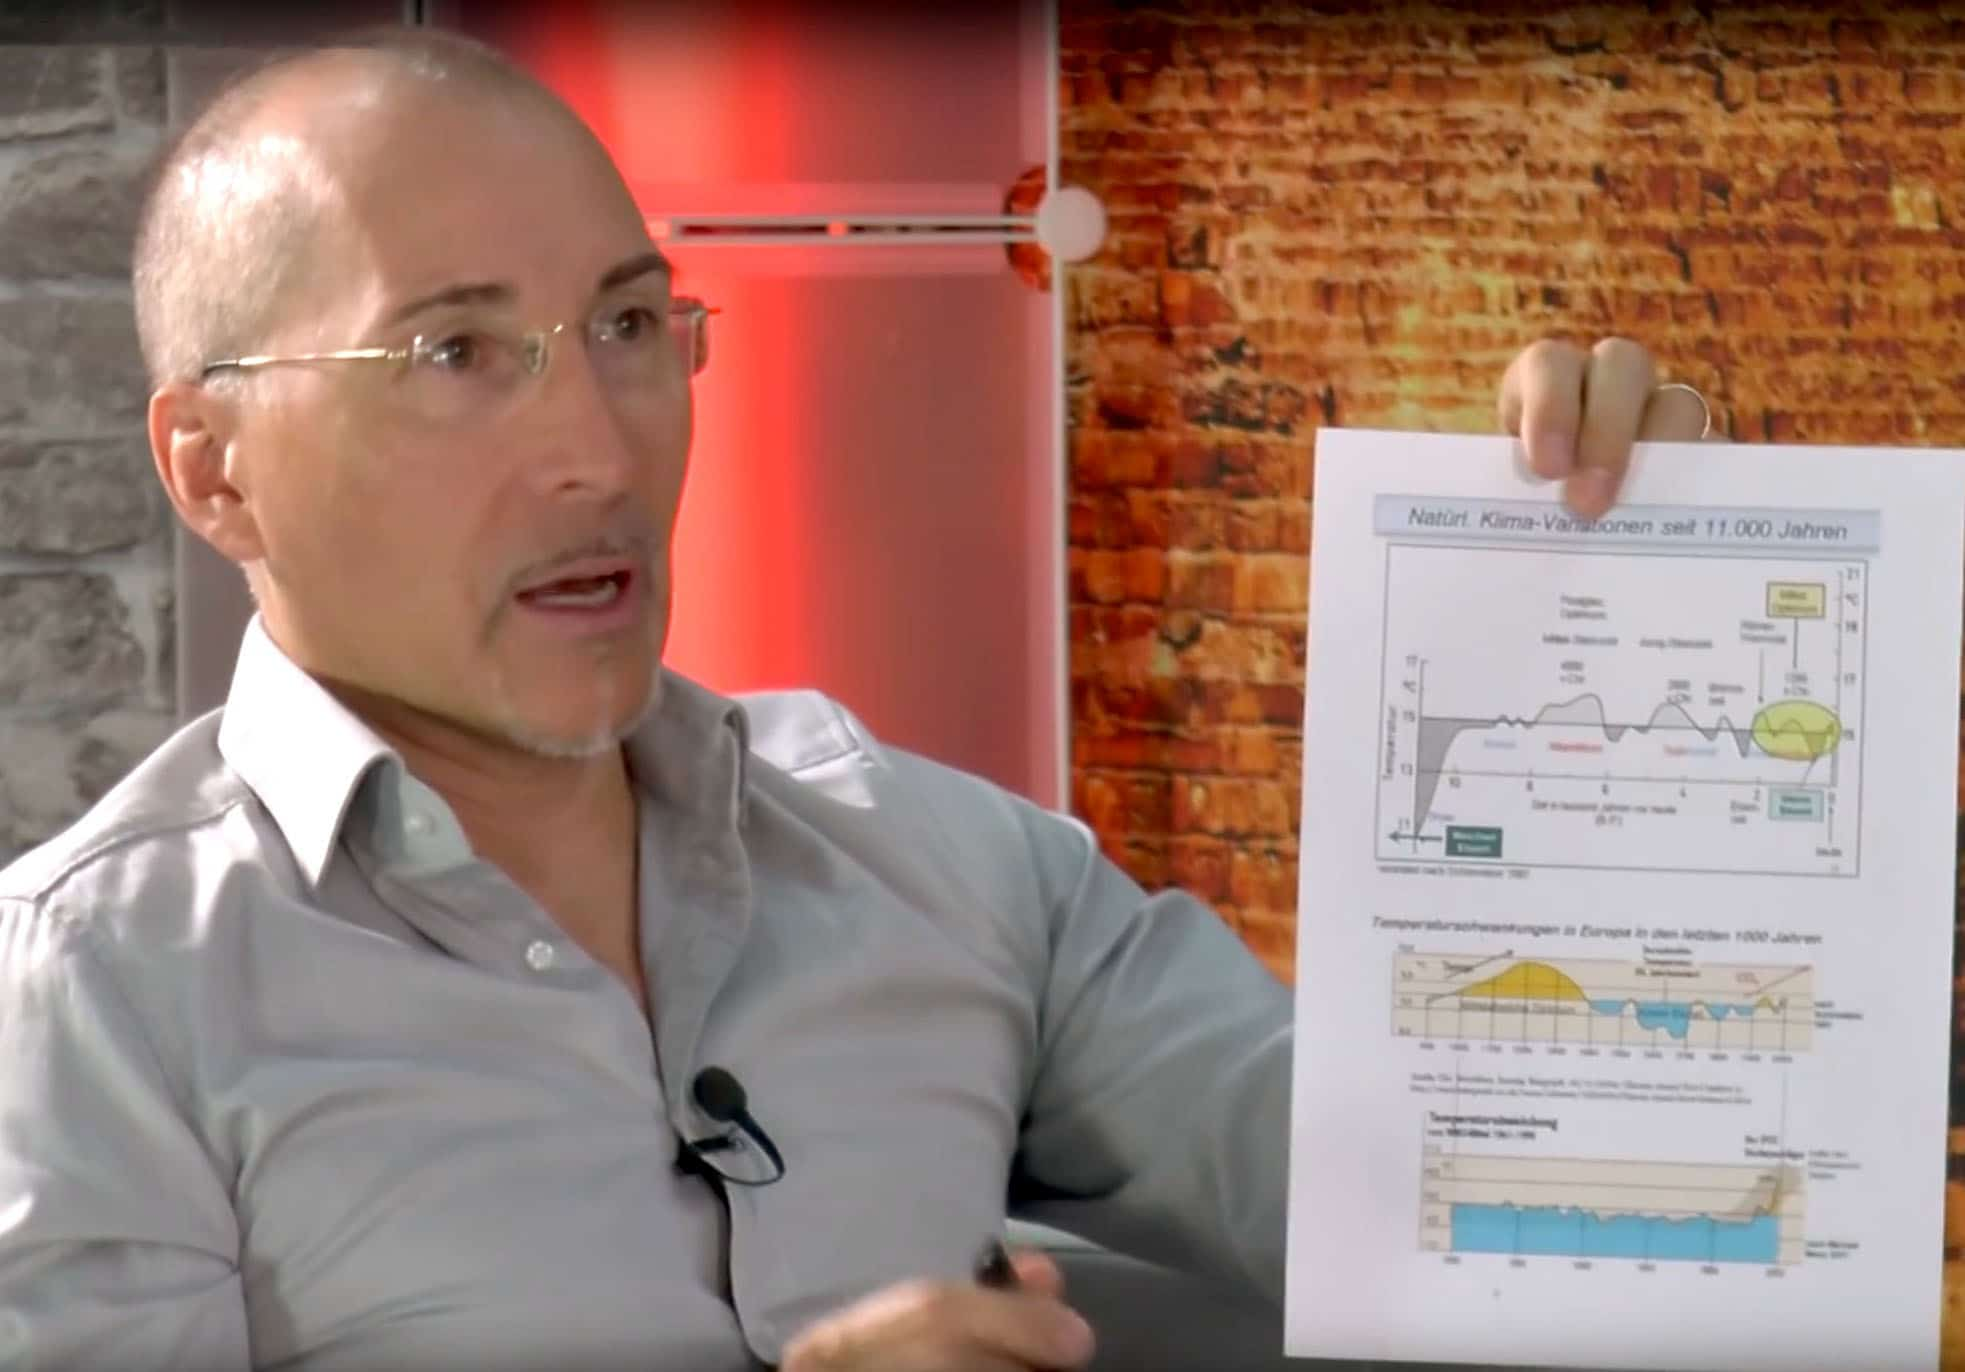 German Climatologist Unloads: 'IPCC Is To Deceive People', Hockey Stick Graph A Fake